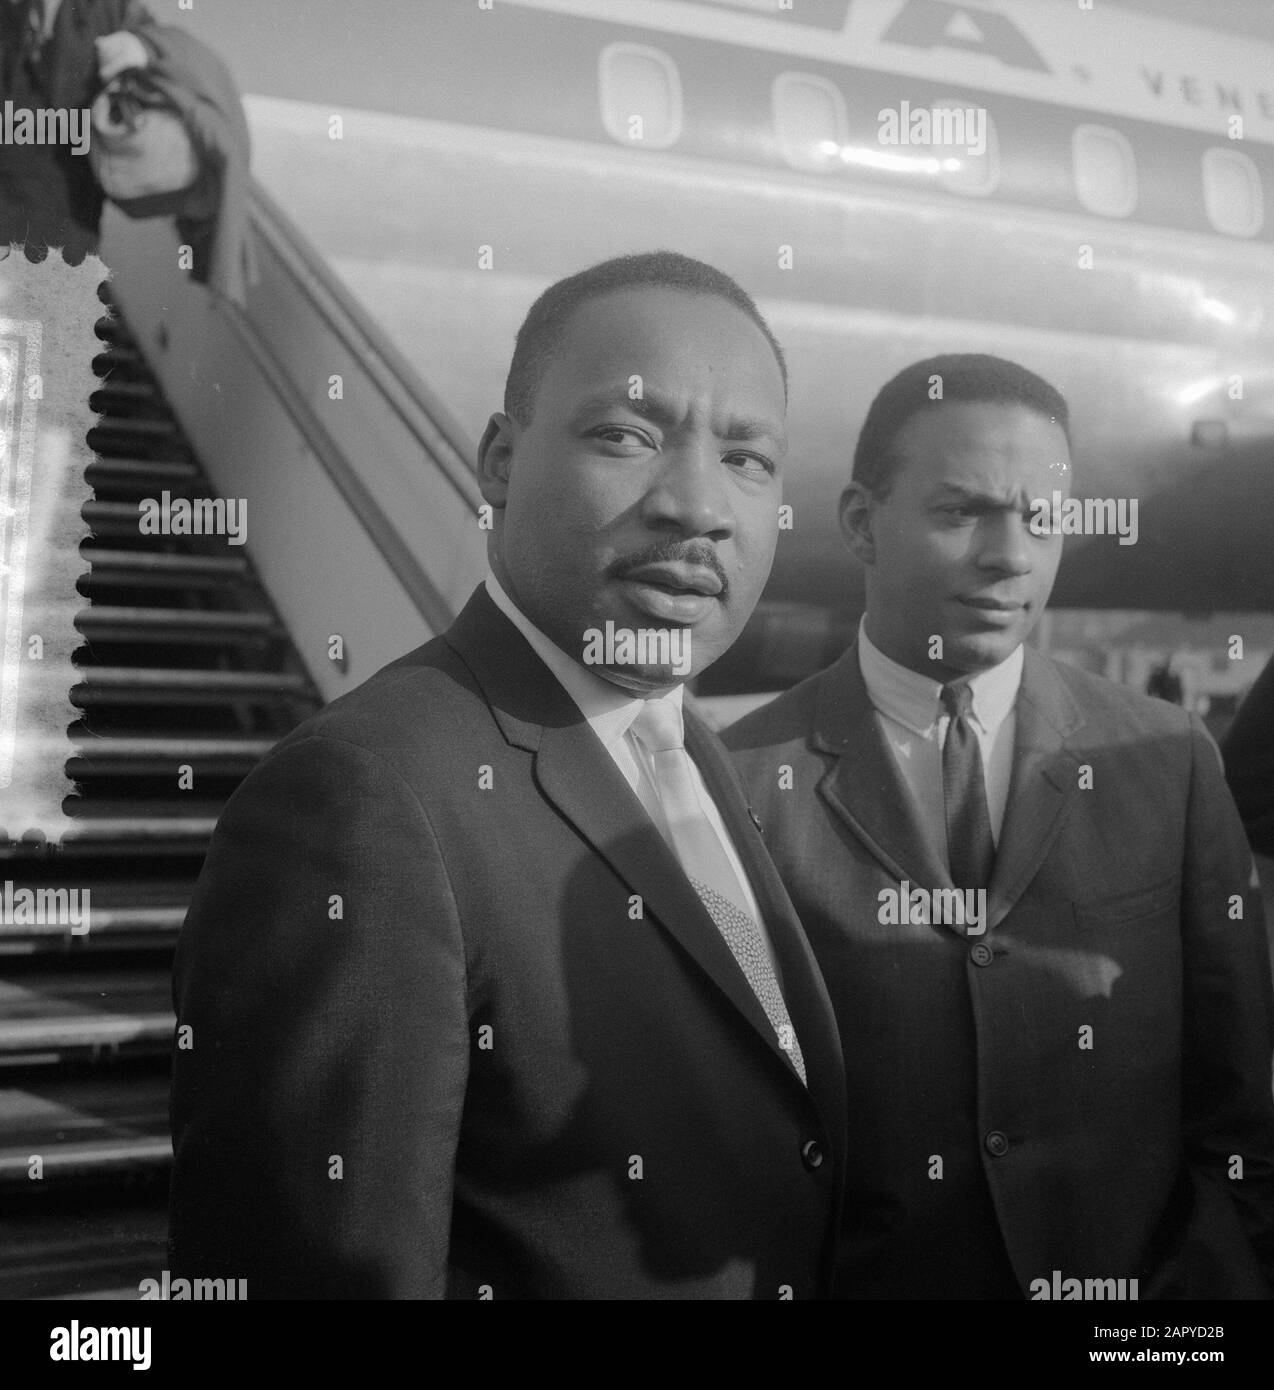 Dr. Martin Luther King Jr. and Harry Belafonte share a good